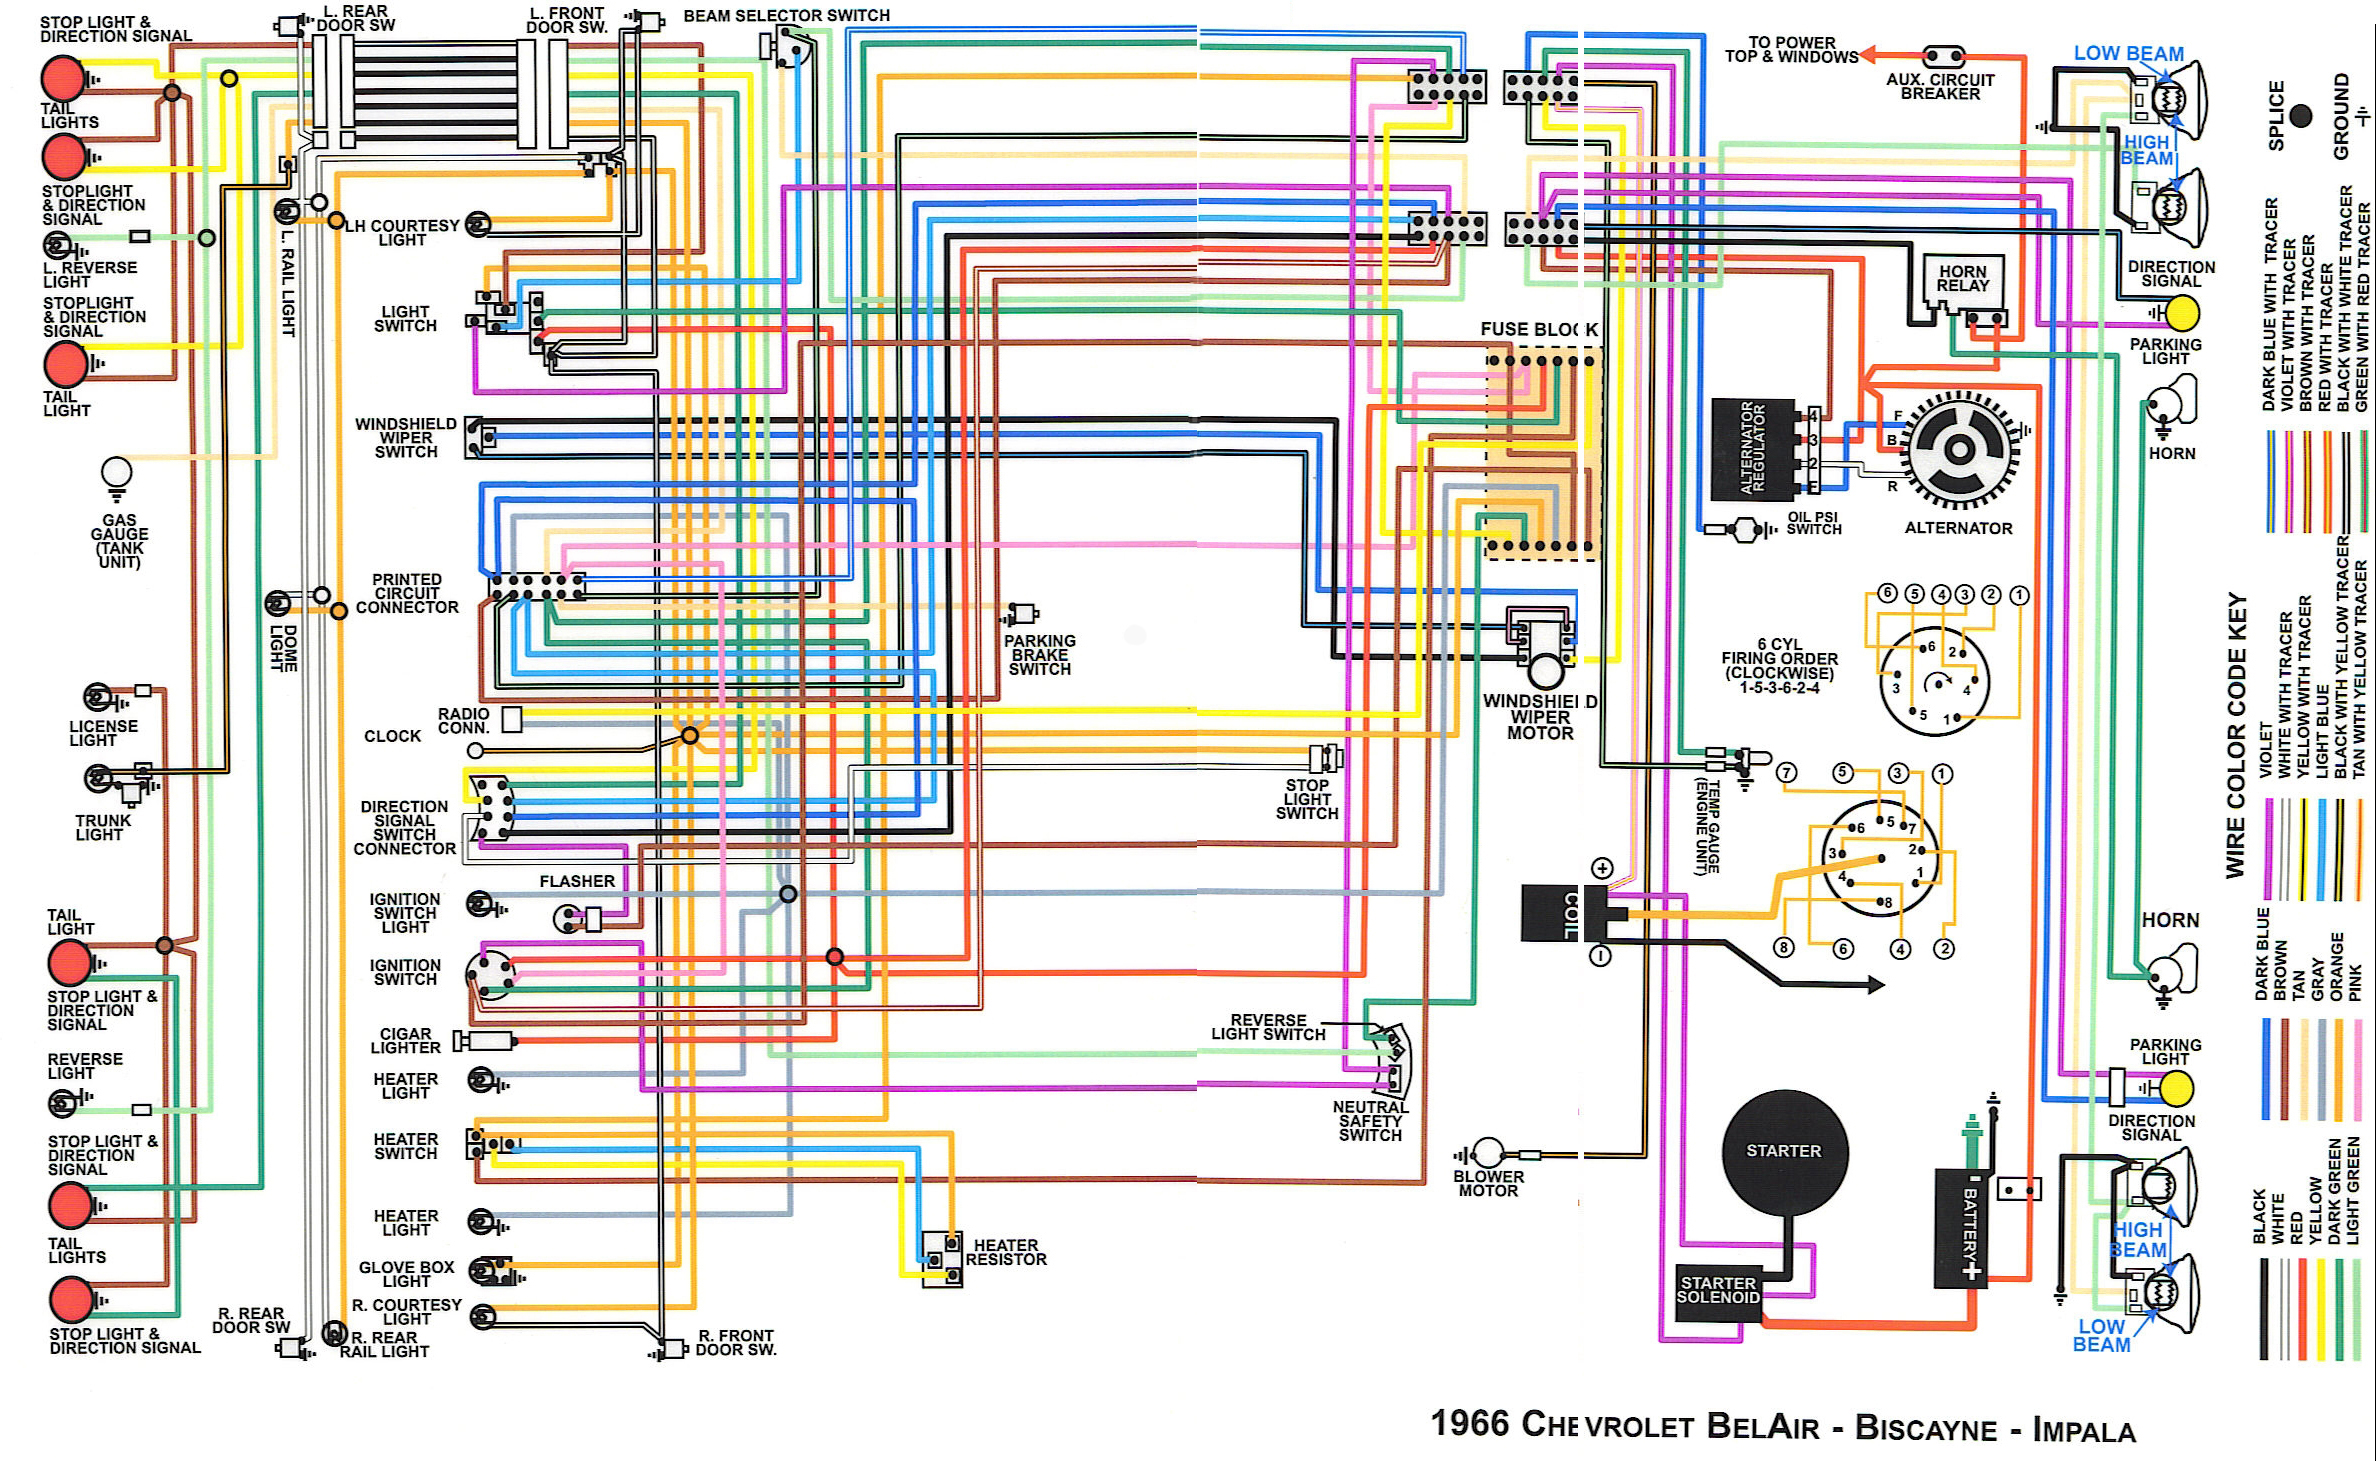 1967 Camaro Wiring Diagram | Wiring Diagram on